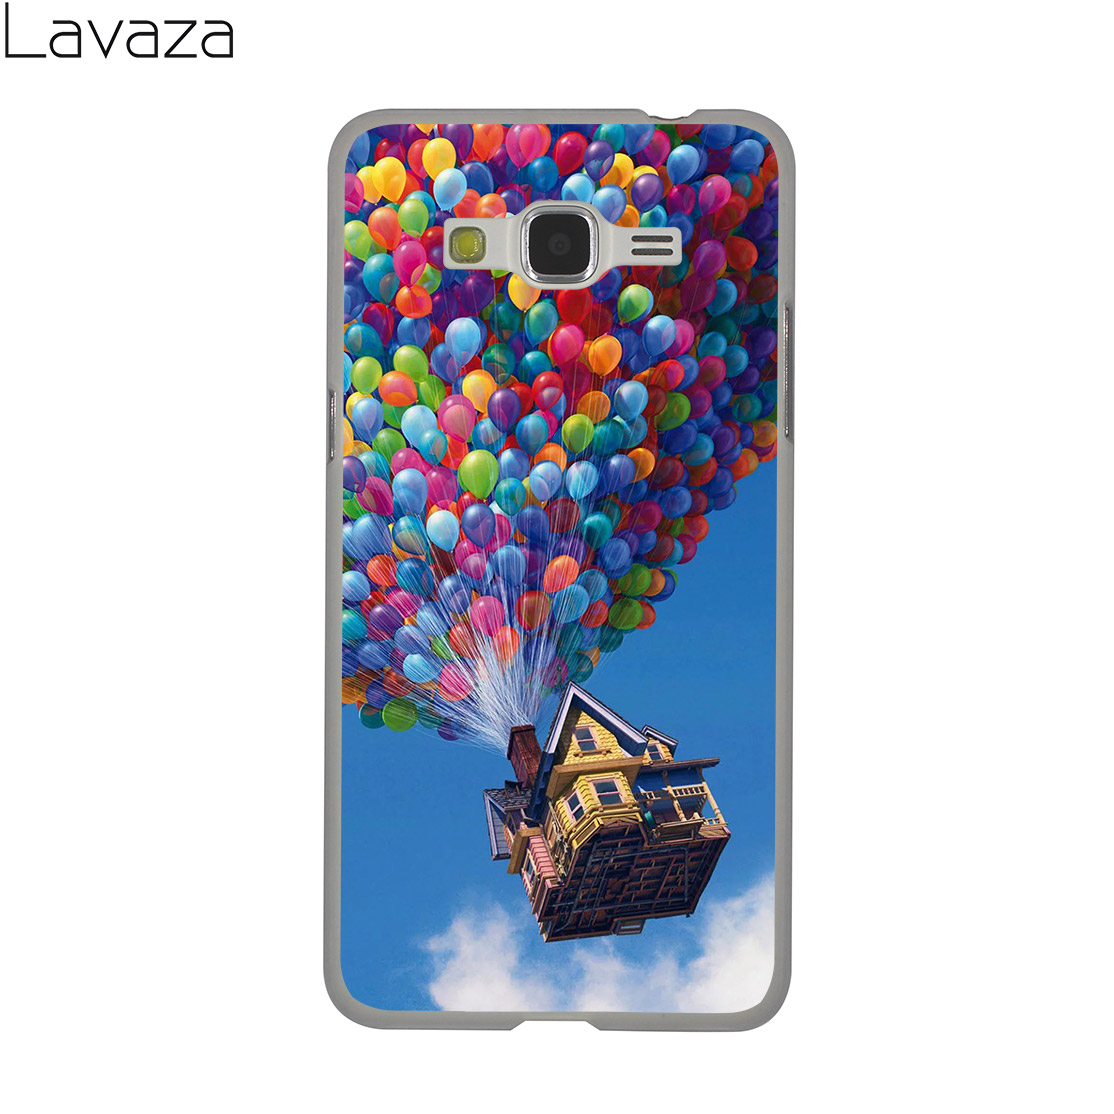 Lavaza hot air balloon Sunset sky up Case for Samsung Galaxy A3 A5 A7 A8 2015 2016 2017 2018 Note 8 5 4 3 2 Grand Prime